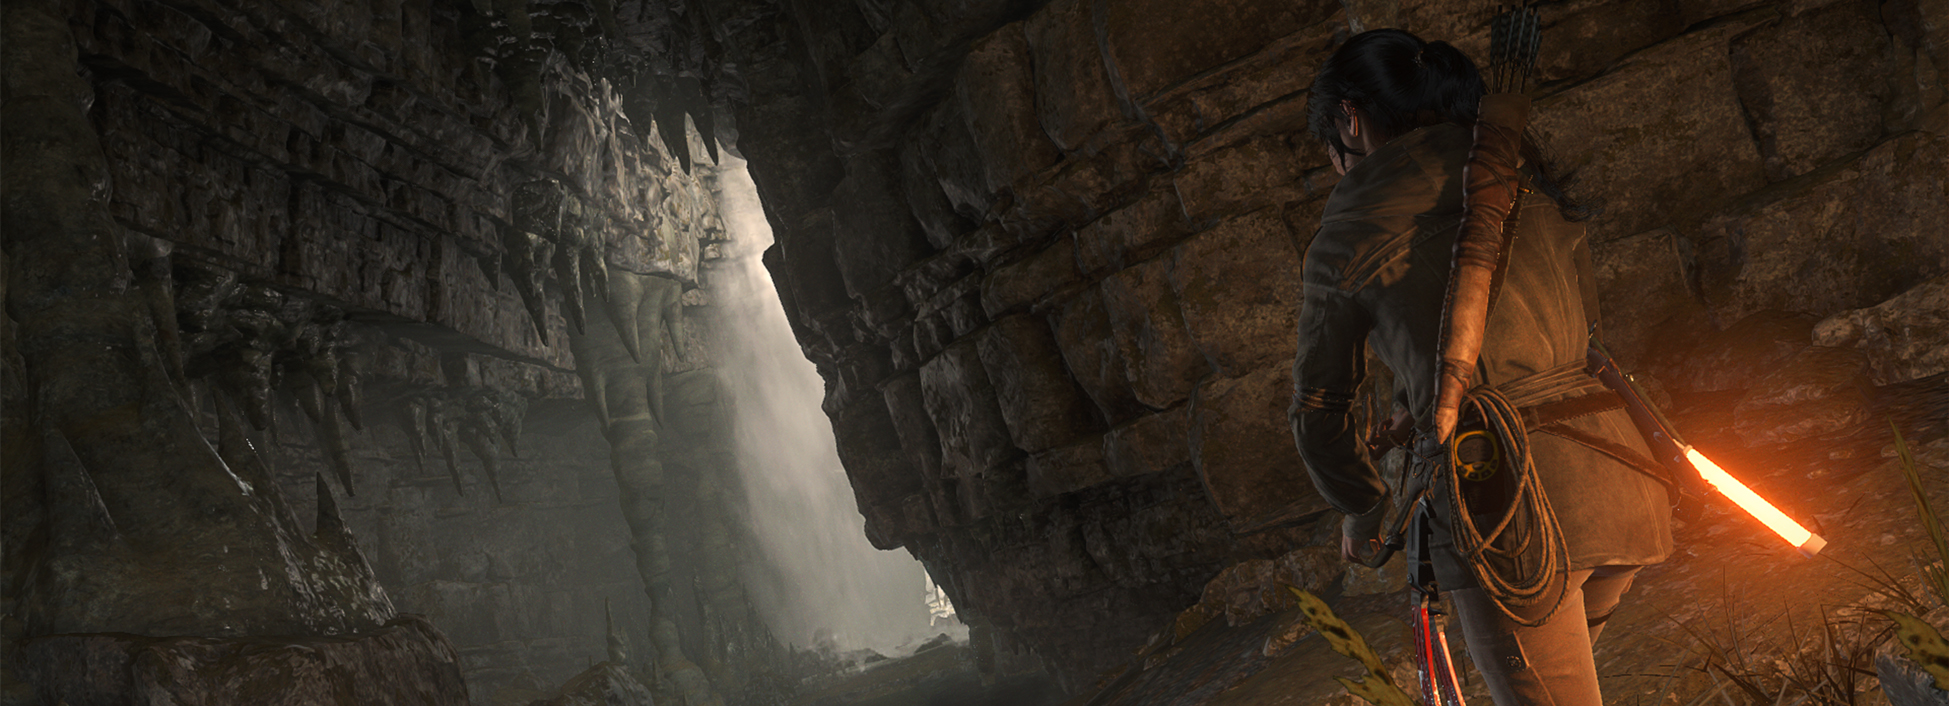 Lara Croft investigates cave in Rise of the Tomb Raider 2015